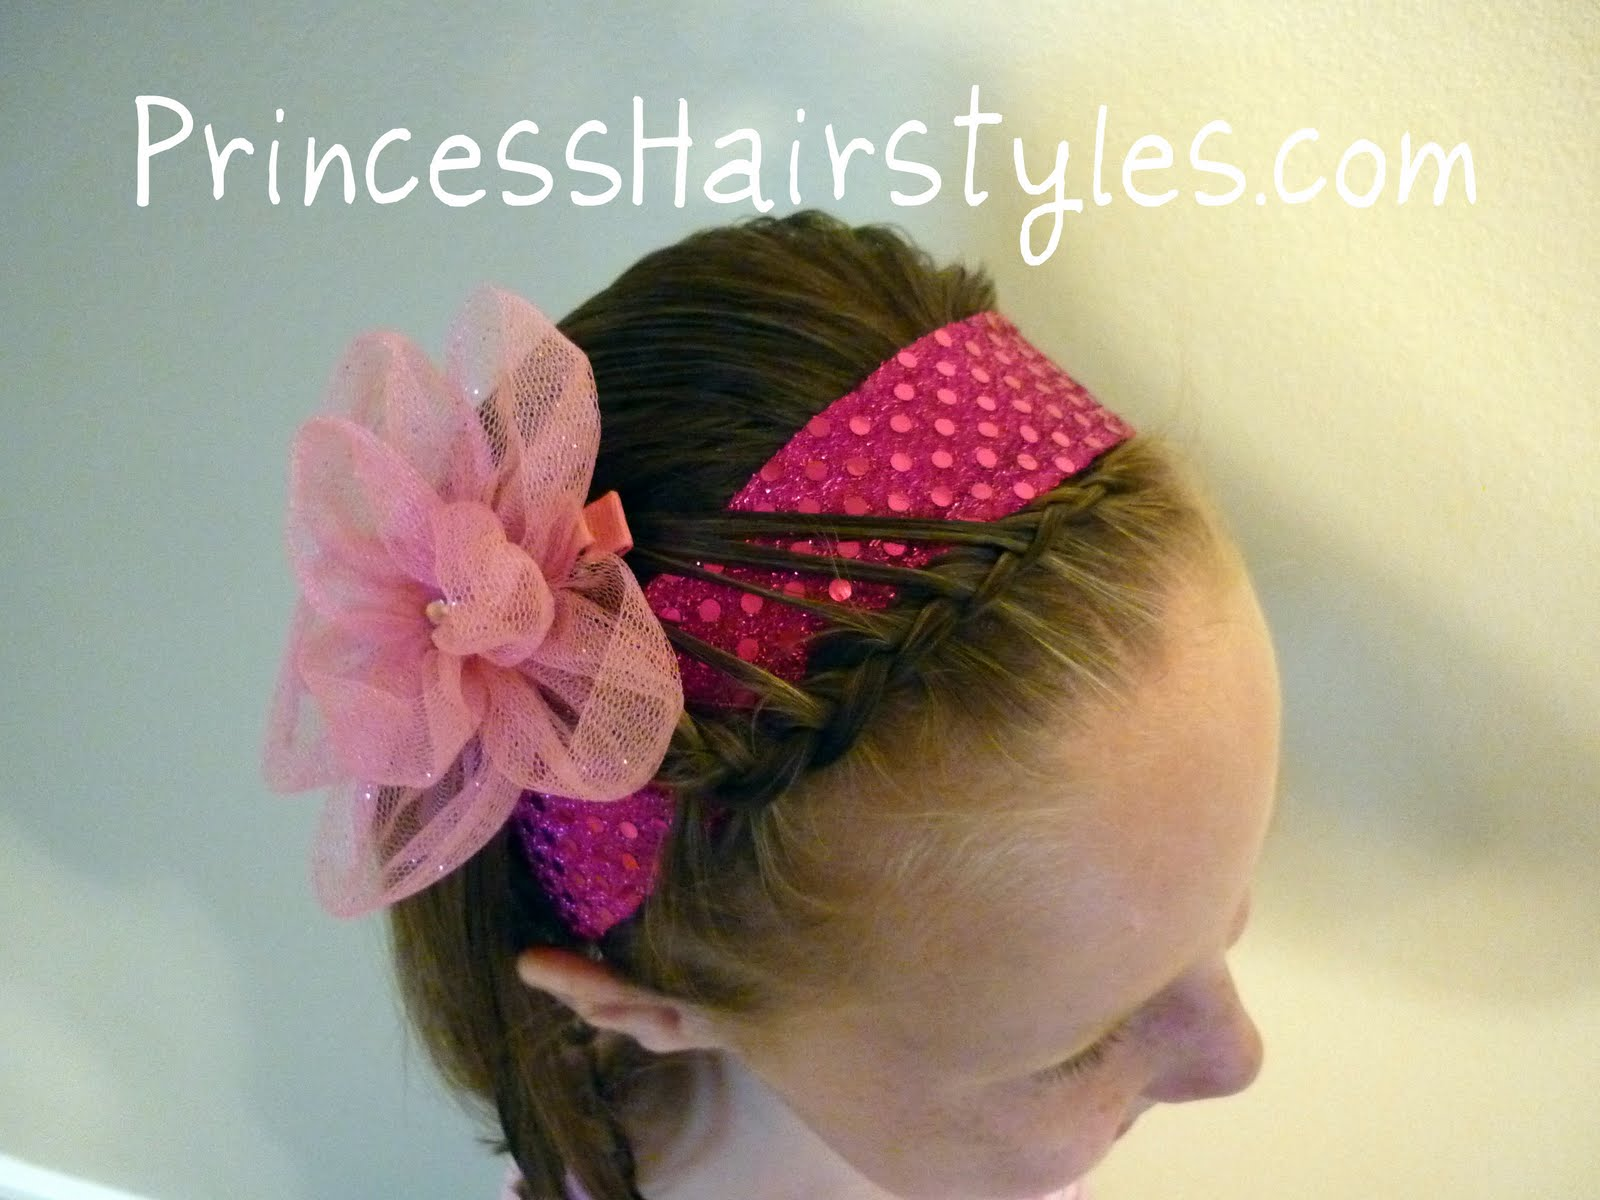 Simple And Fancy Headband Hairstyles For Girls Princess